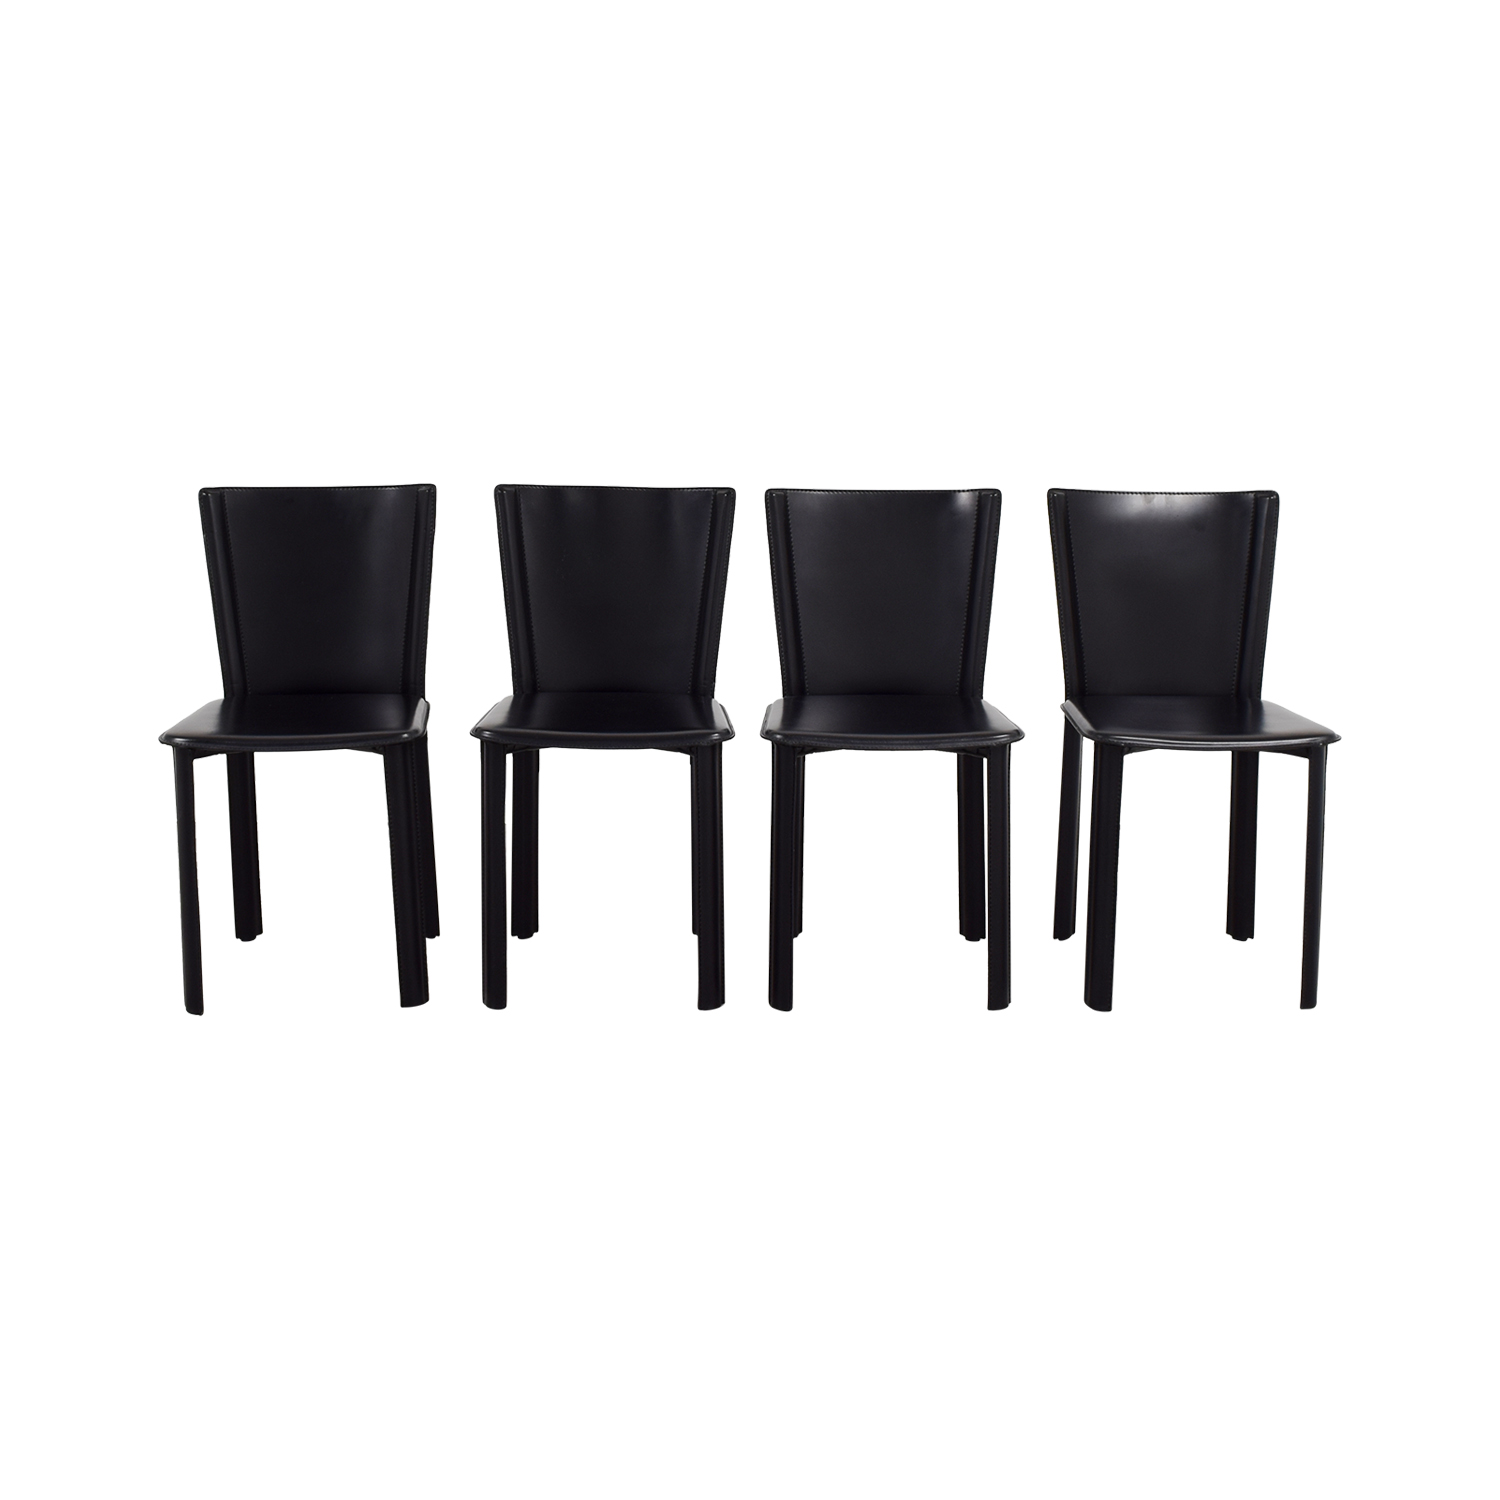 Design Within Reach Allegro Black Dining Chairs / Dining Chairs